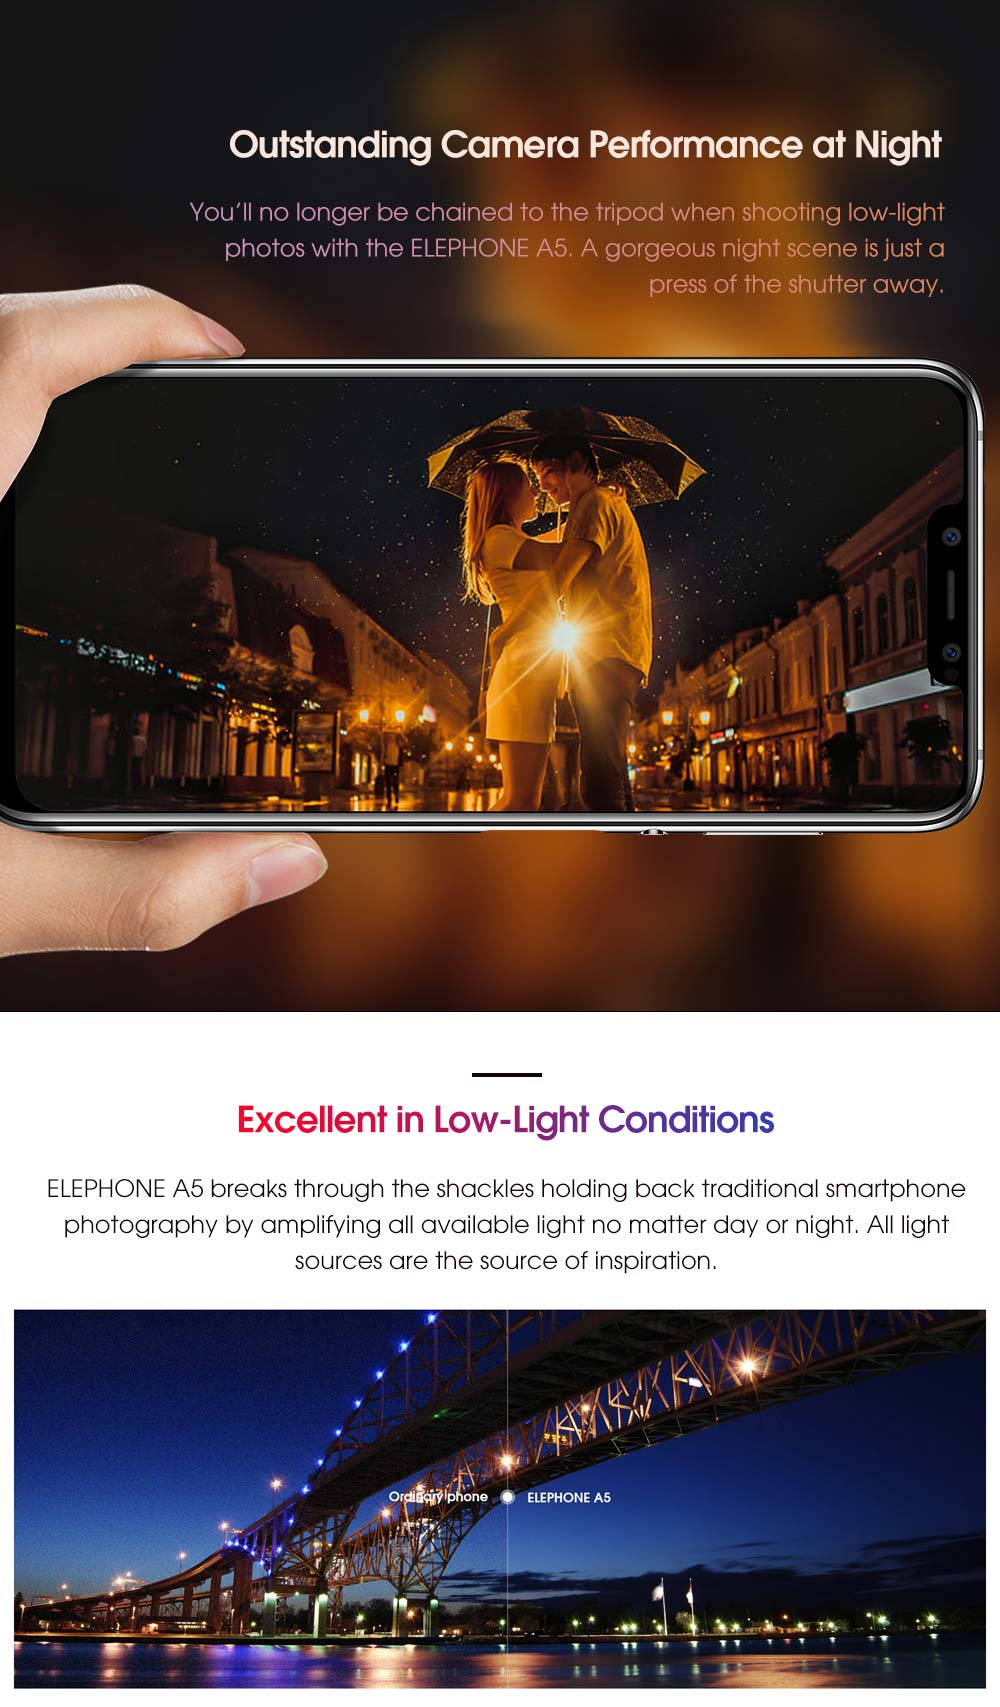 elephone a5 smartphone 6gb/128gb for sale